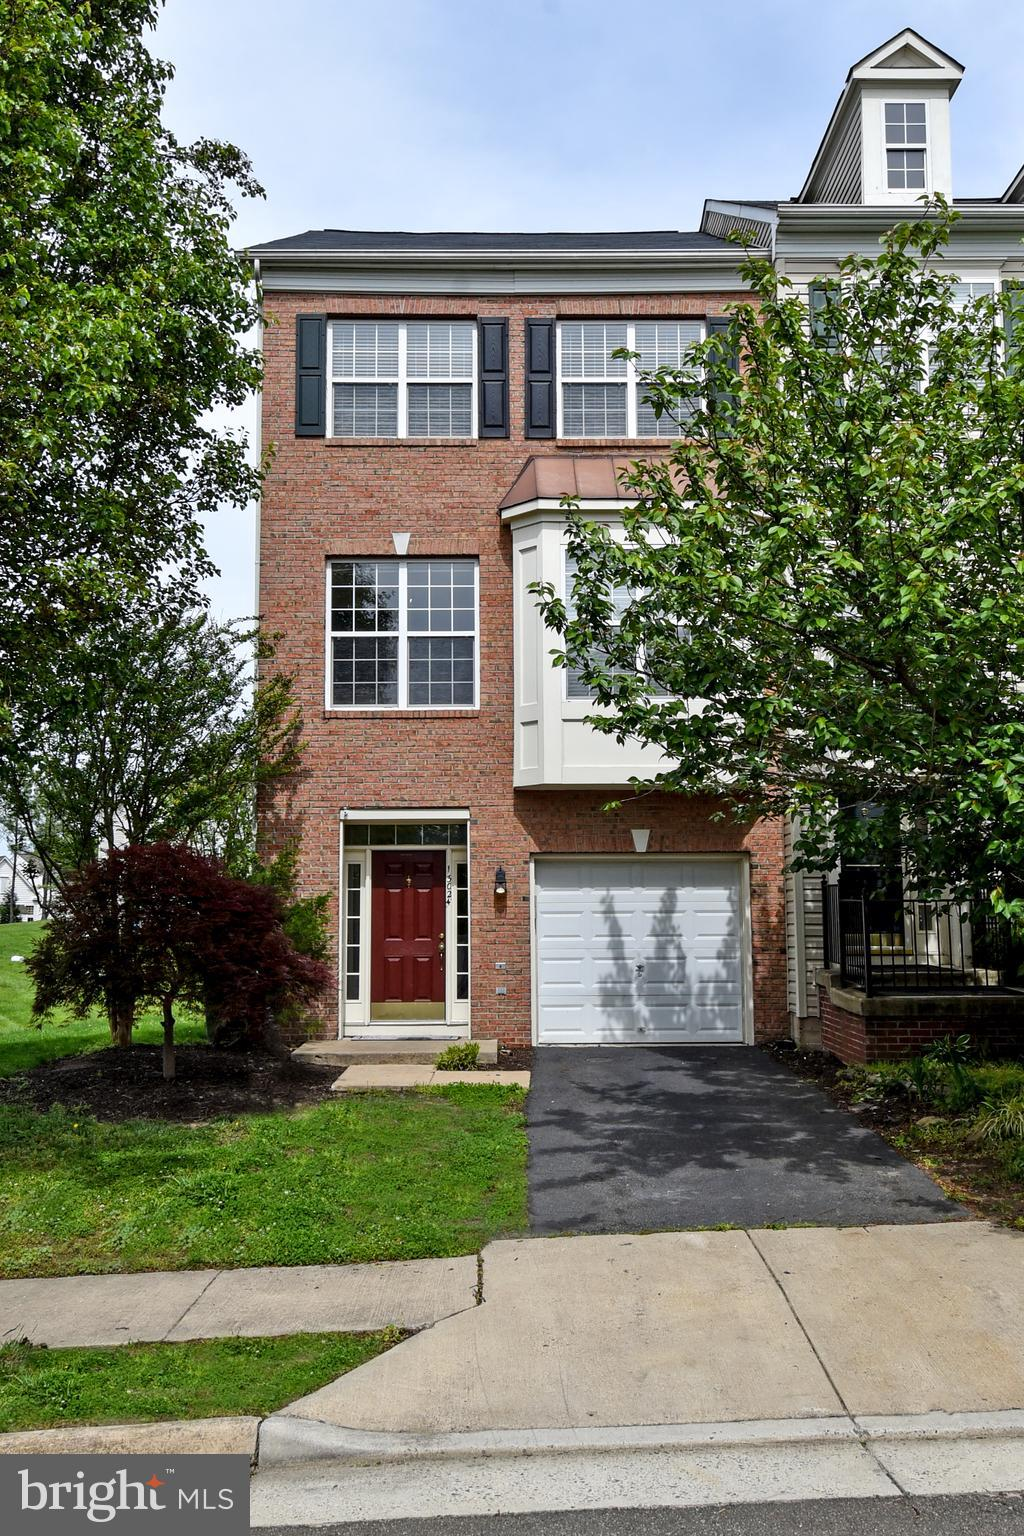 Expansive end unit brick front townhome with nearly 2300 sq. ft. of finished living space on 3 floor